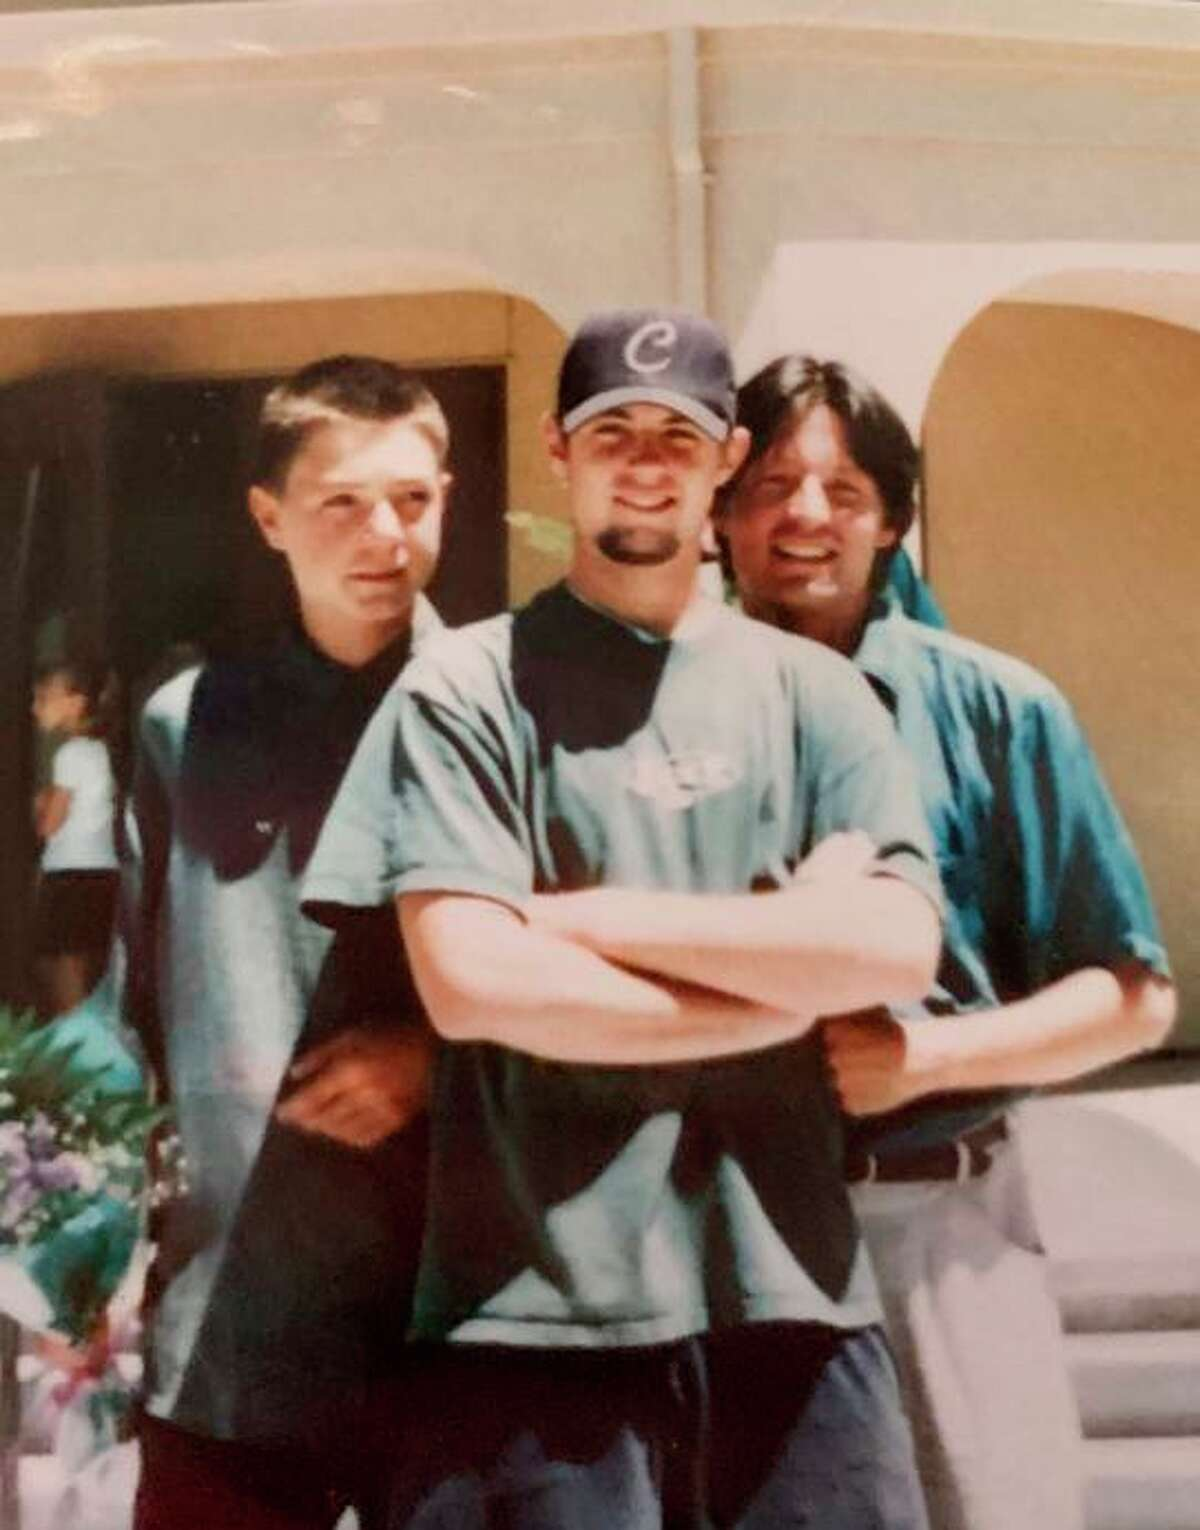 John Beaven (center) was 21 when his father, Alan (right), was killed during the Sept. 11 attacks.